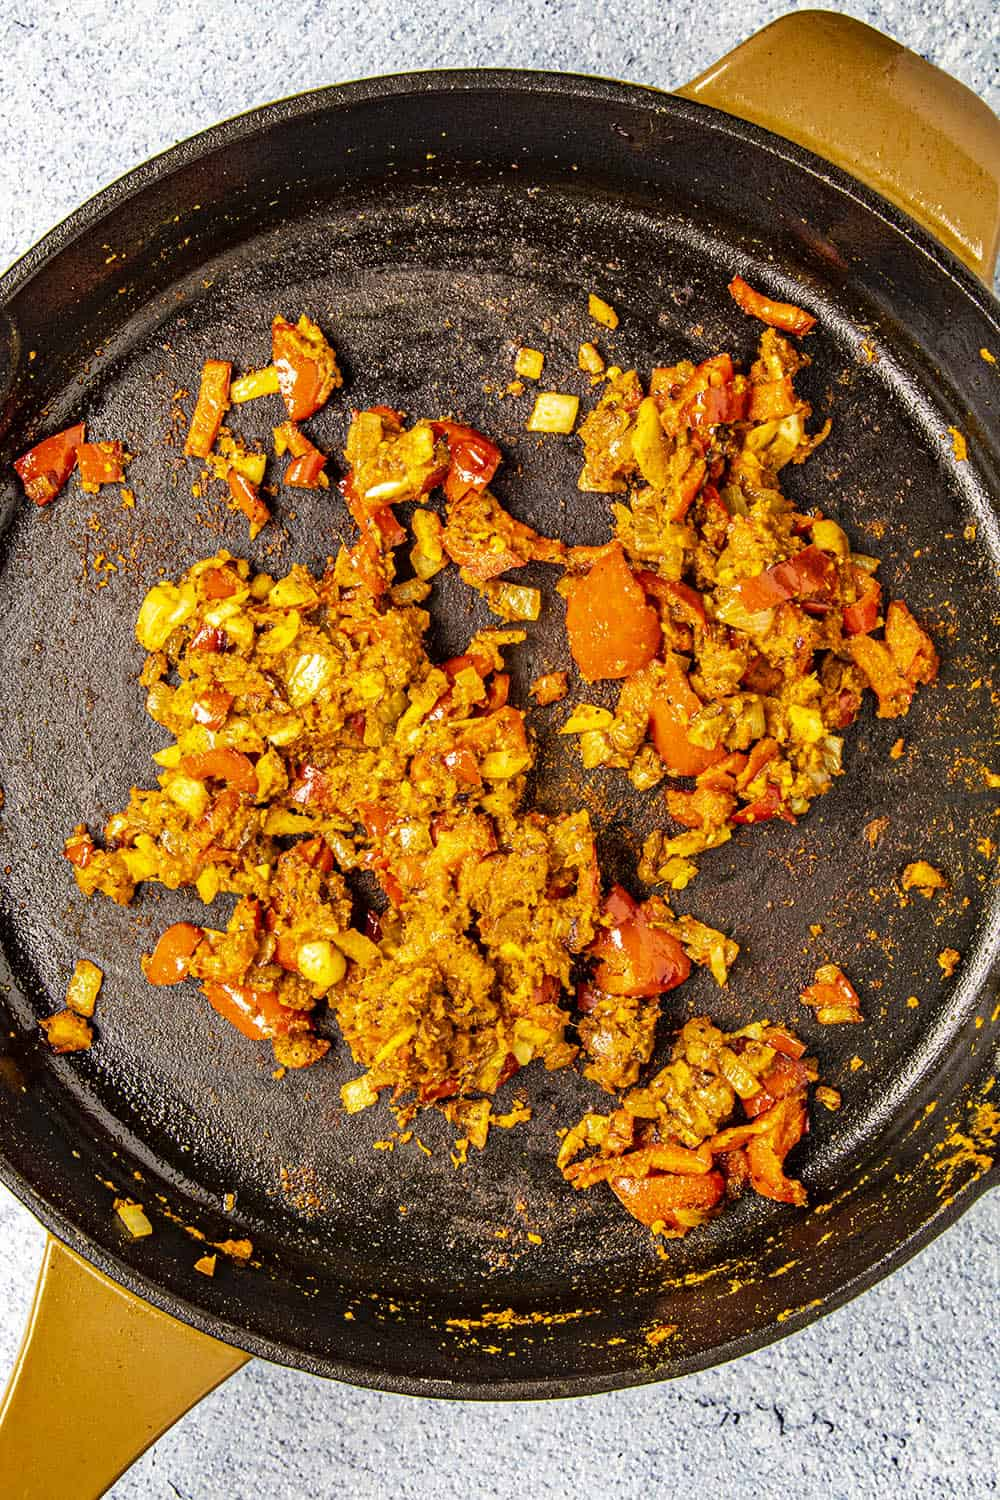 Cooking down the vegetables and red curry paste in a pan